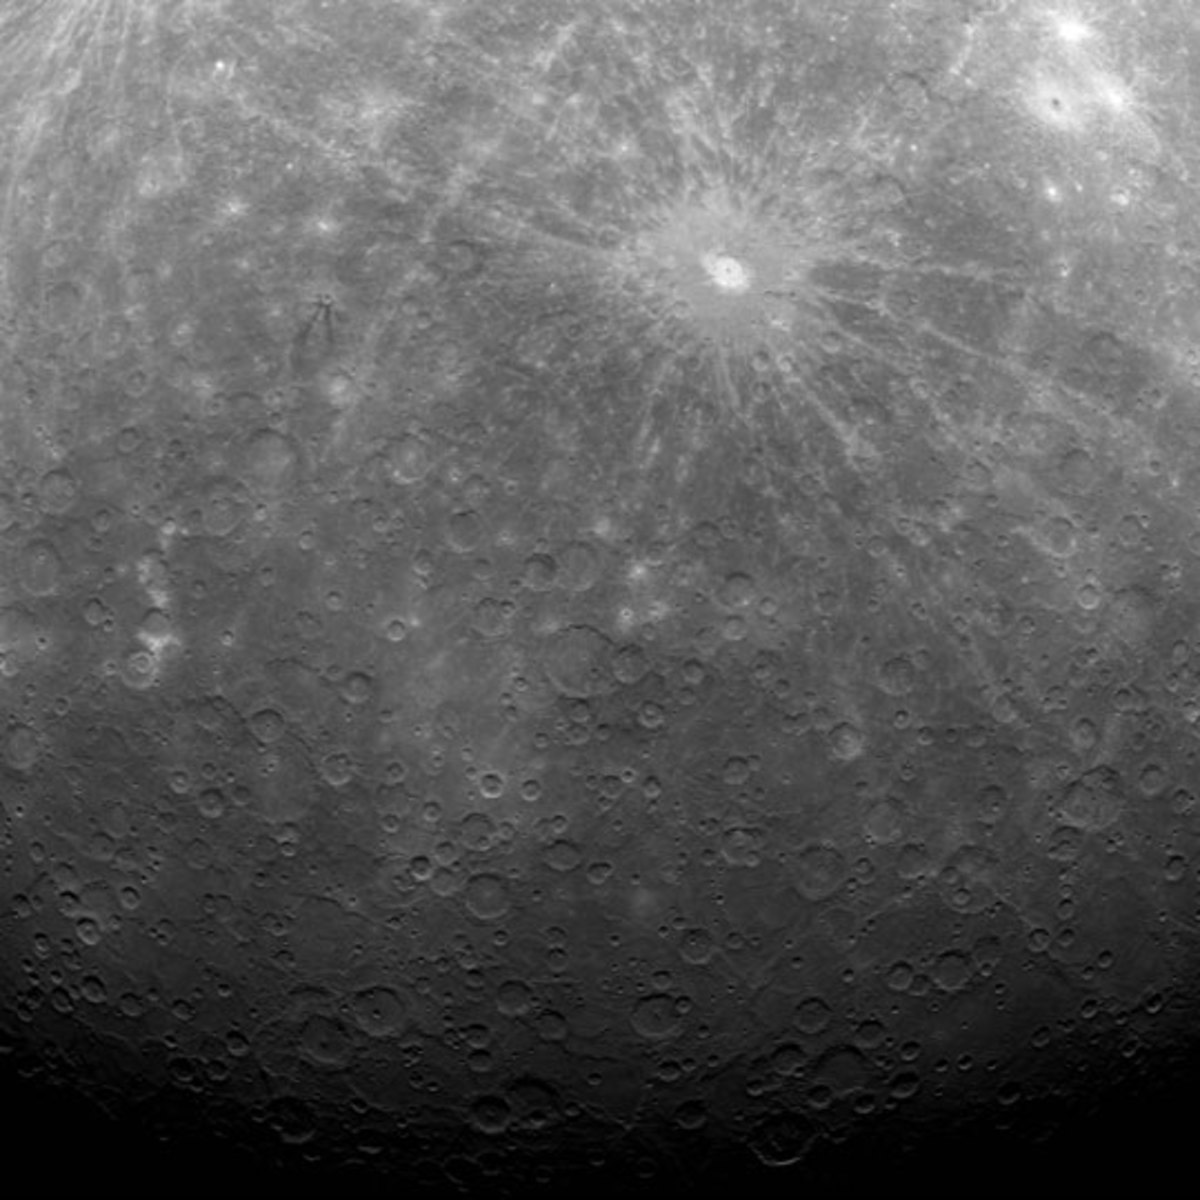 On 17th March 2011, Messenger became the first spacecraft ever to orbit the planet Mercury. This picture of the crater Debussy, was the very first image taken. This was on 29th March